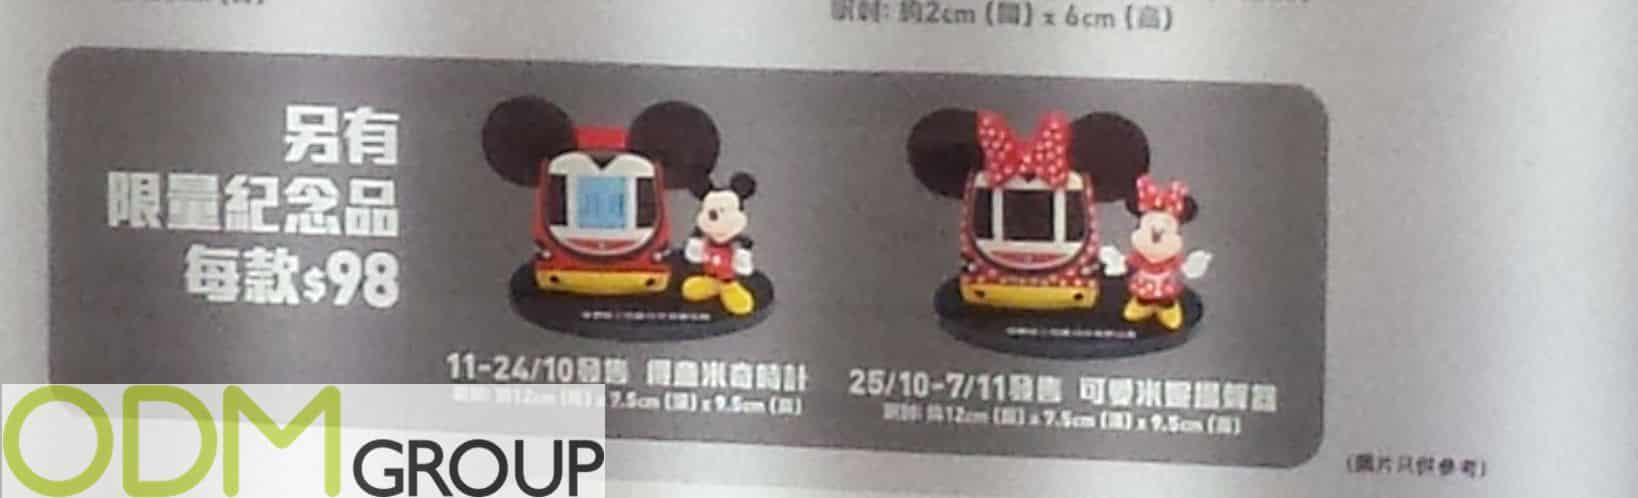 Promotional Gift with Limited Edition Disney Metro Card